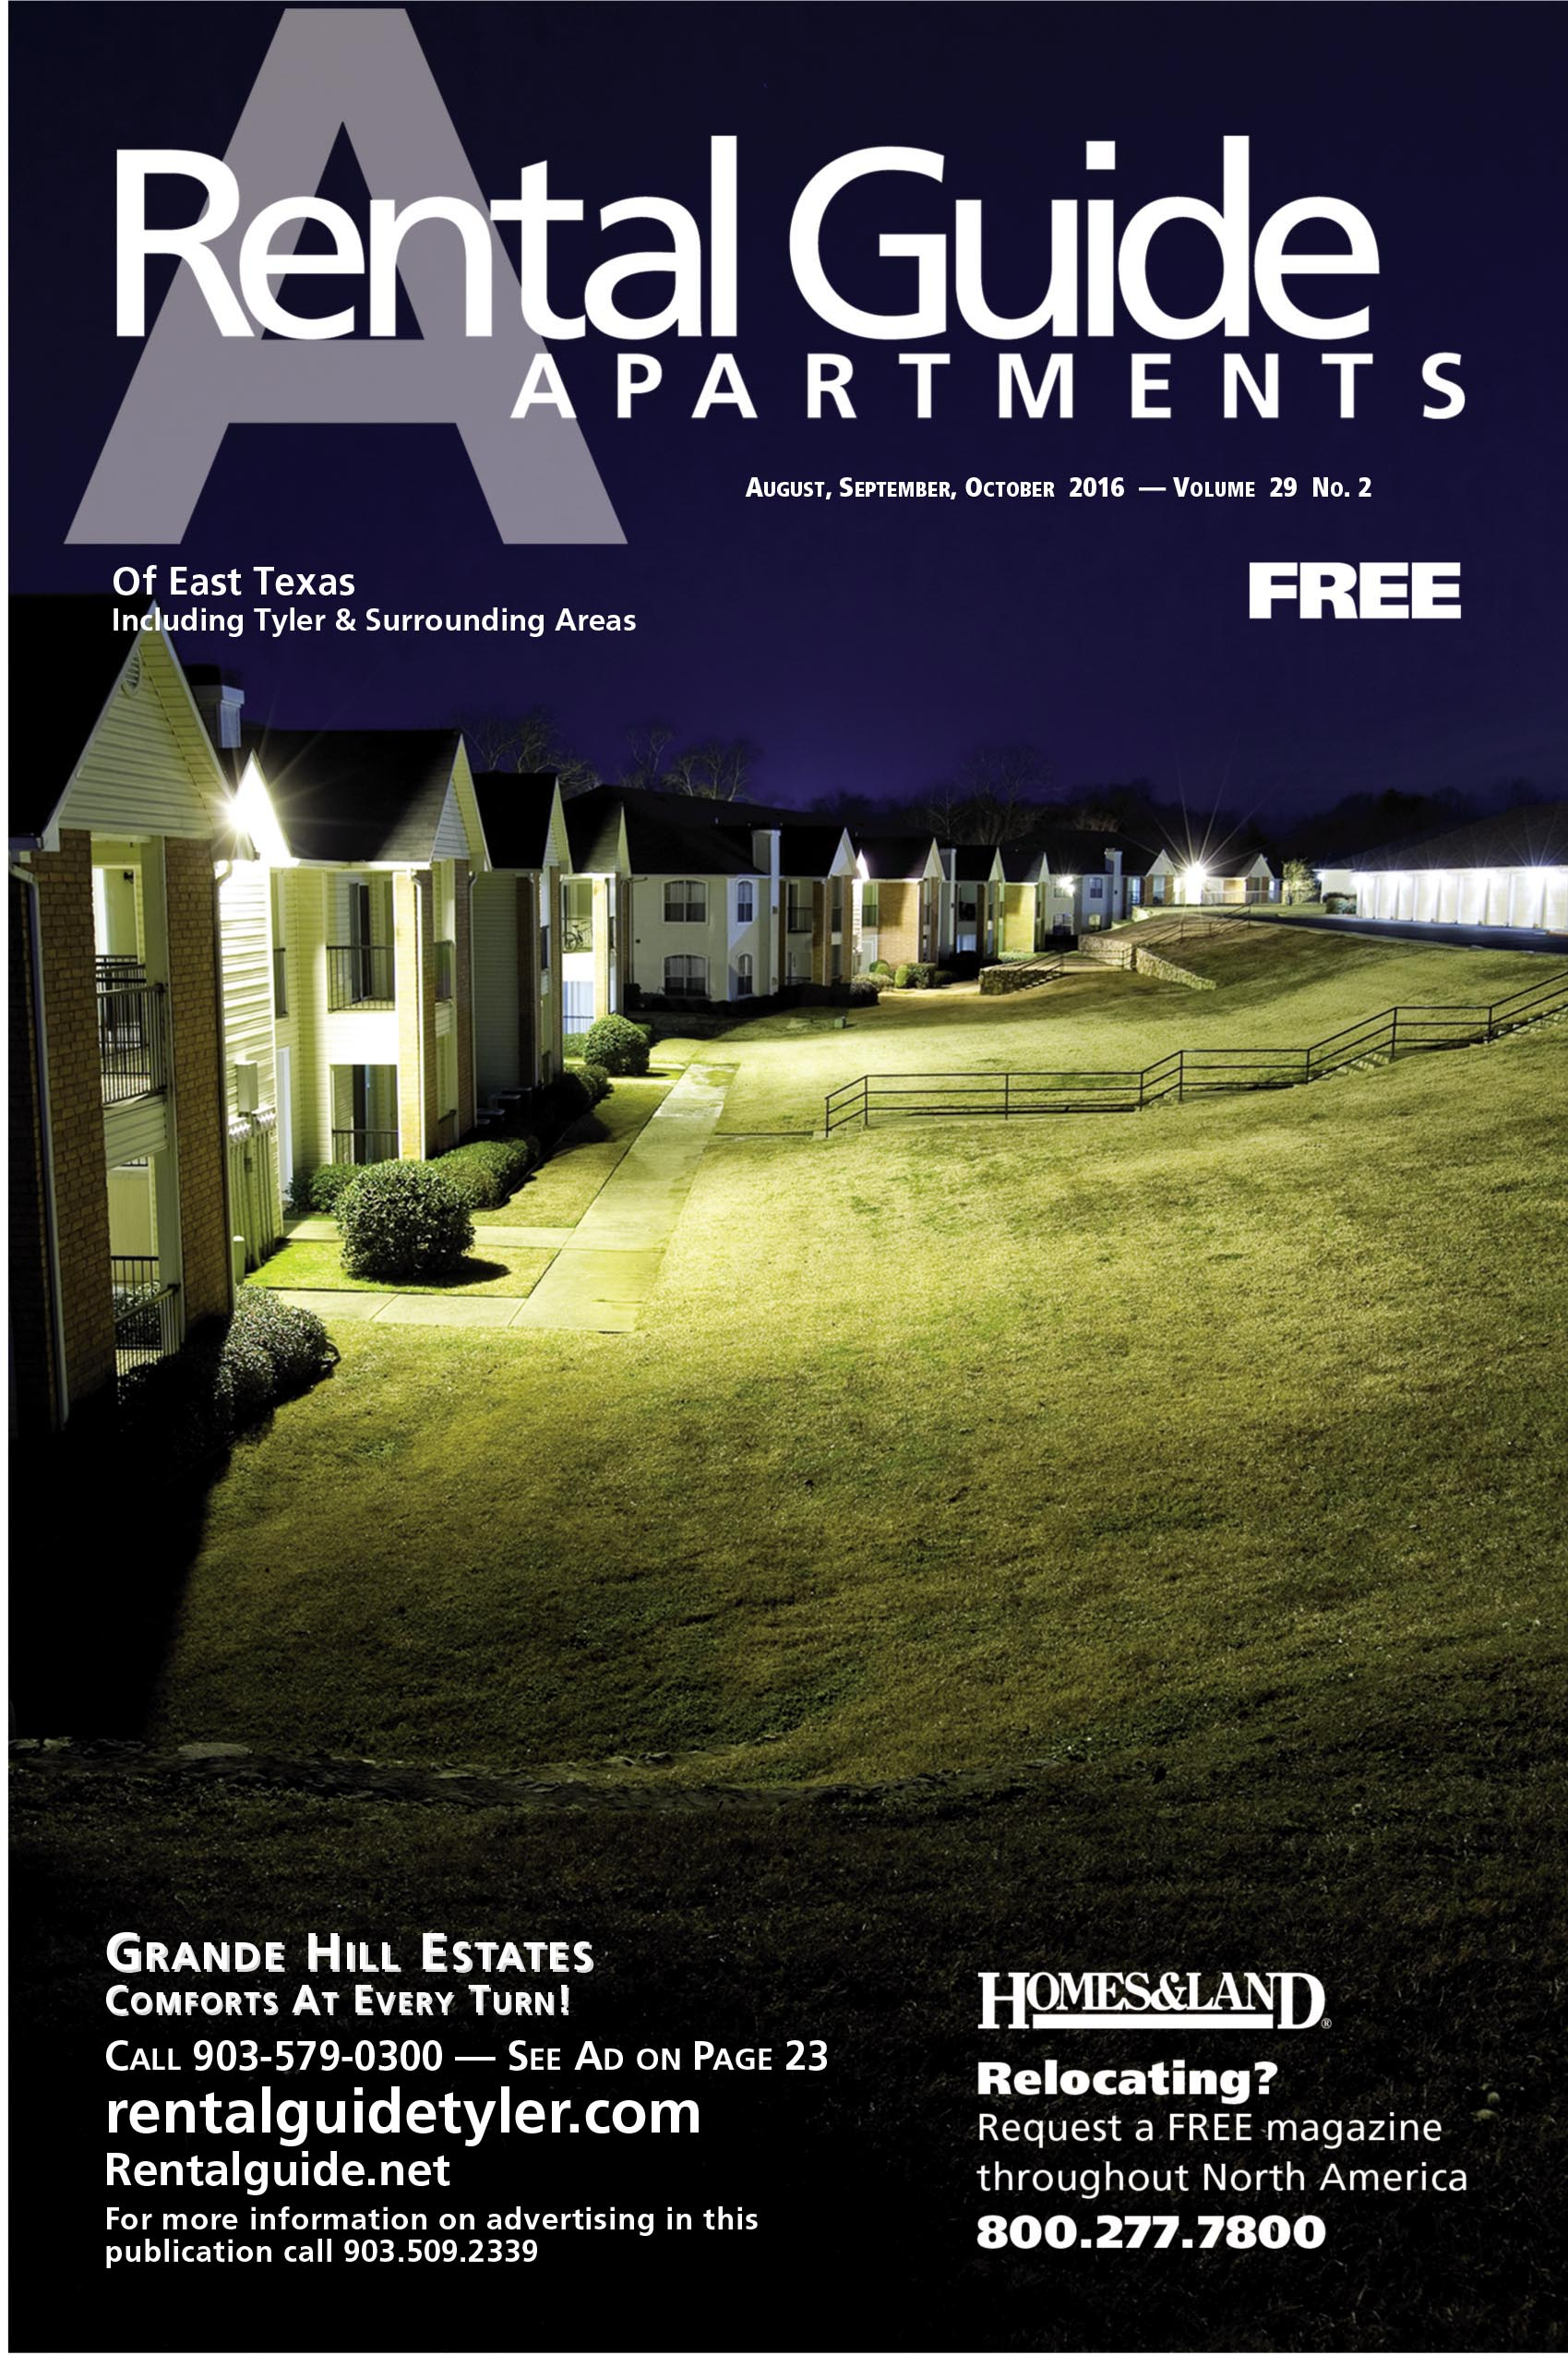 RENTAL GUIDE Magazine Cover